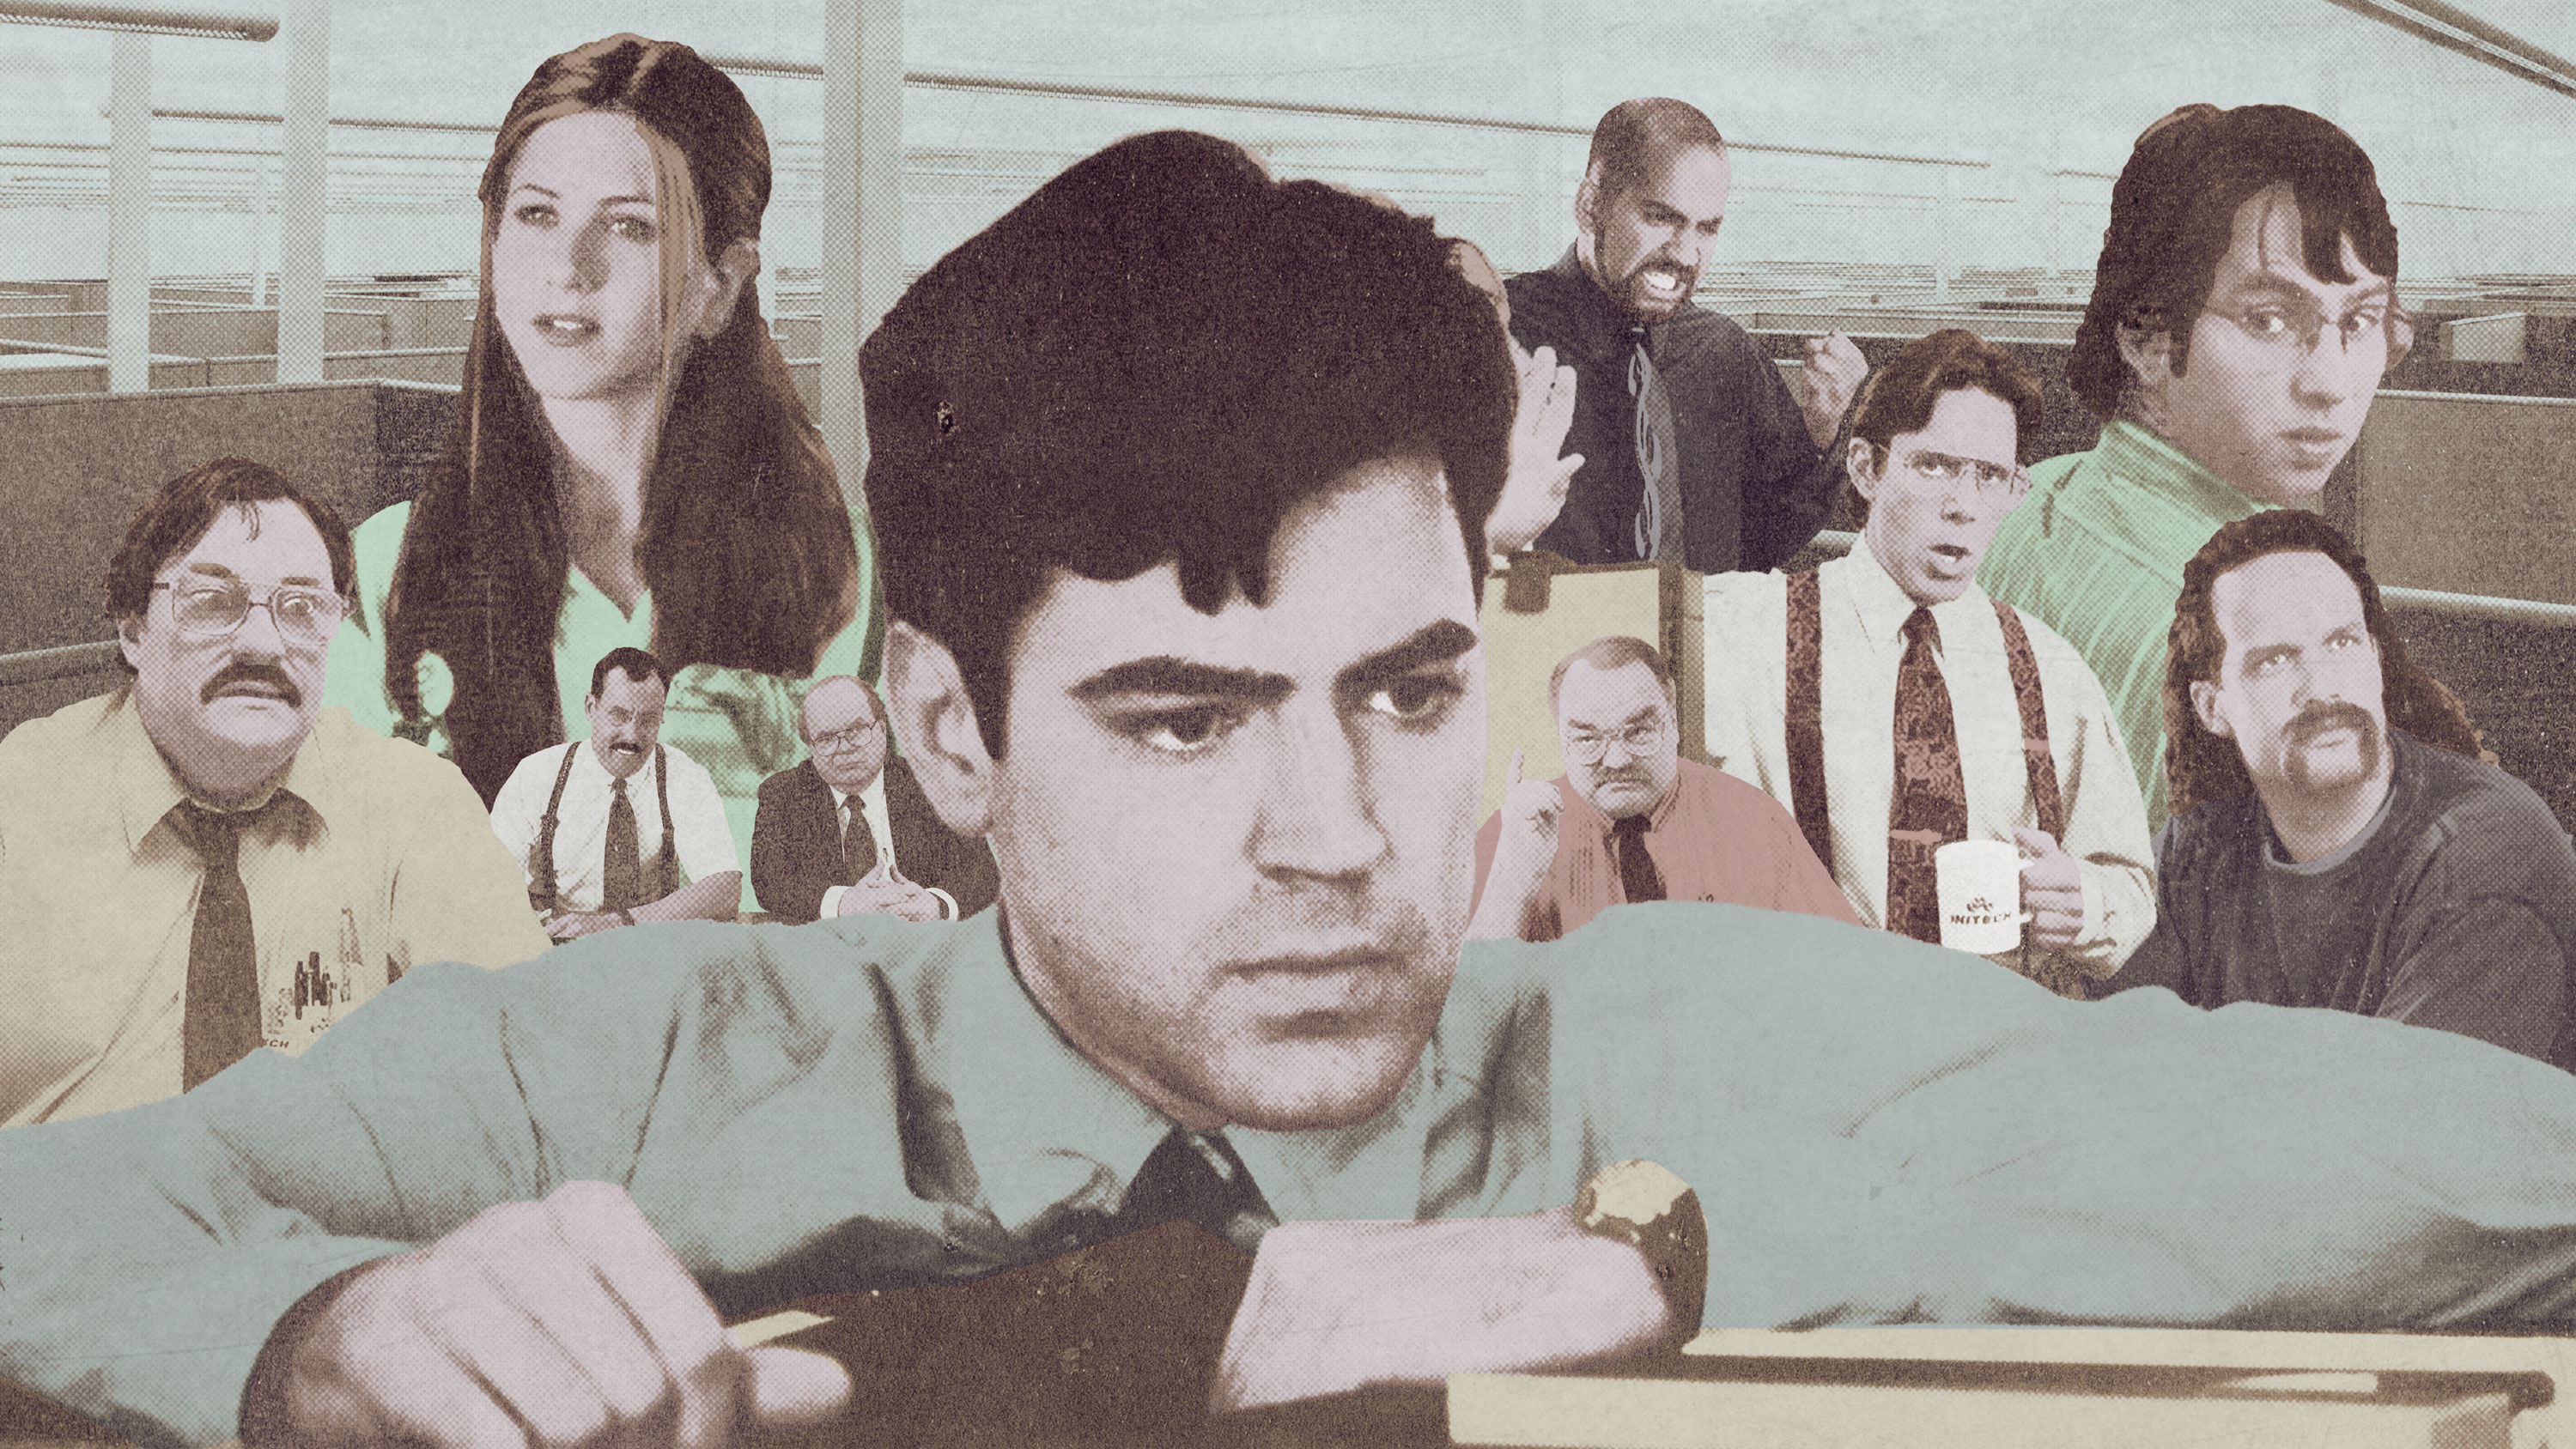 A collage of actors from 'Office Space'